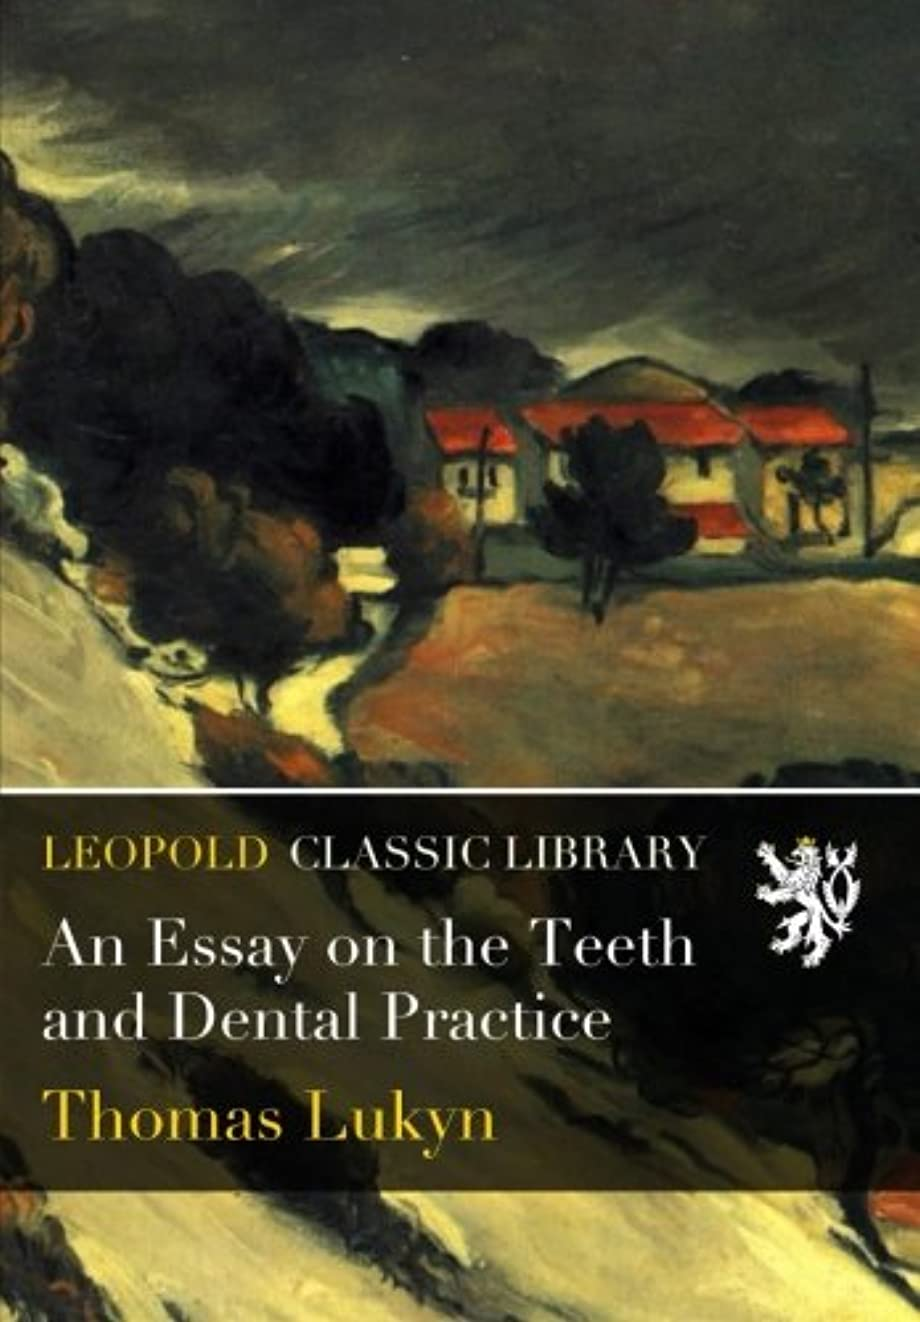 アノイ雇用者腐食するAn Essay on the Teeth and Dental Practice